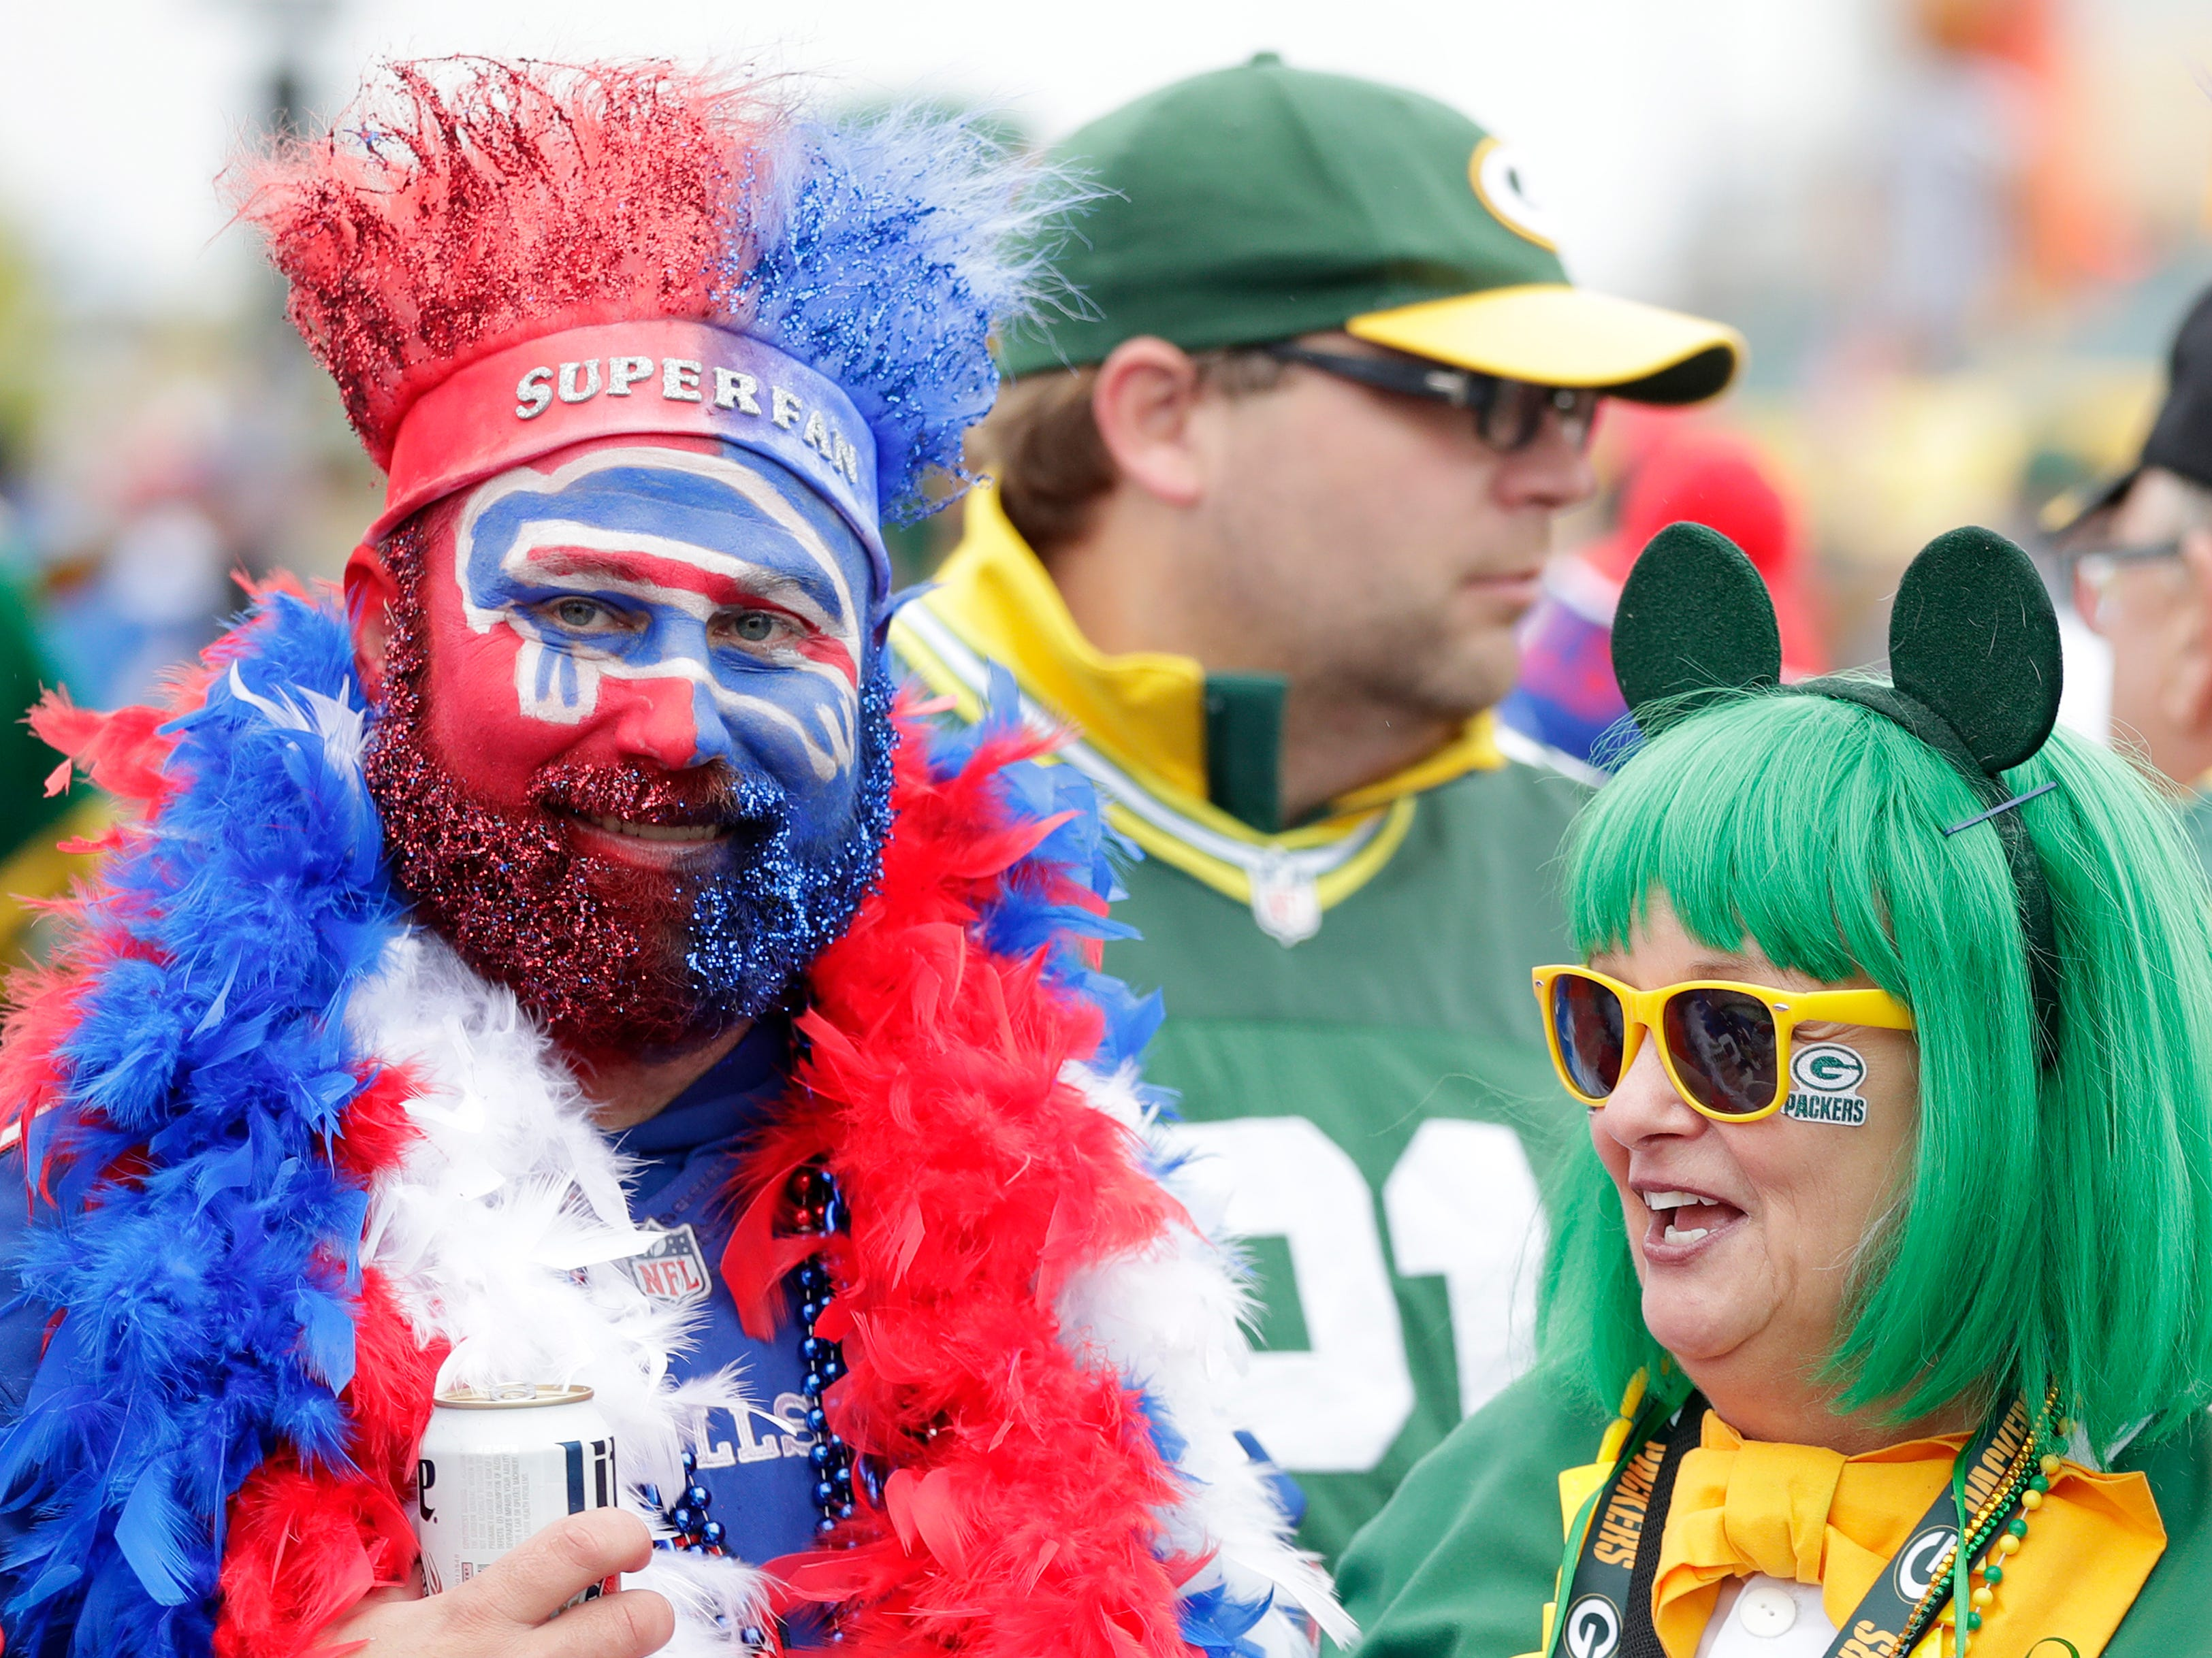 Packers and Bills super fans gather outside Lambeau Field on Sunday, September 30, 2018 in Green Bay, Wis.